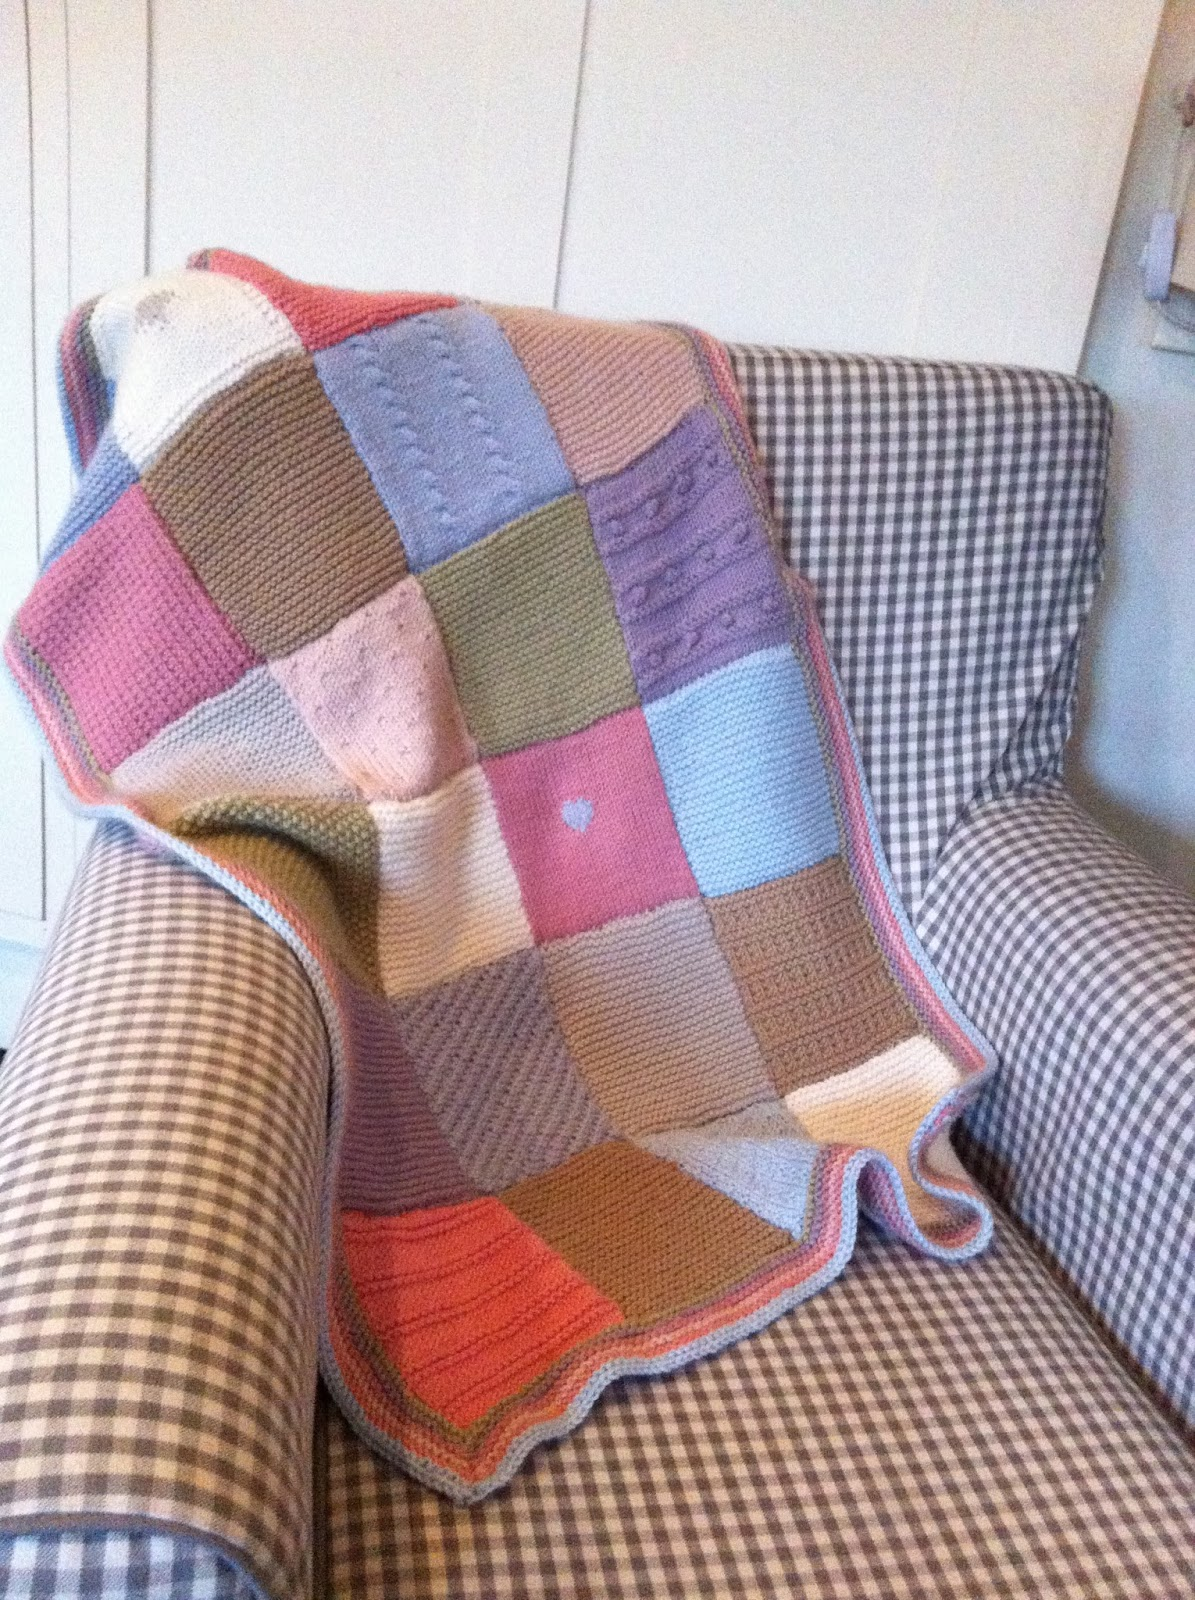 tales from cuckoo land: The blanket that should have been my first knitting t...